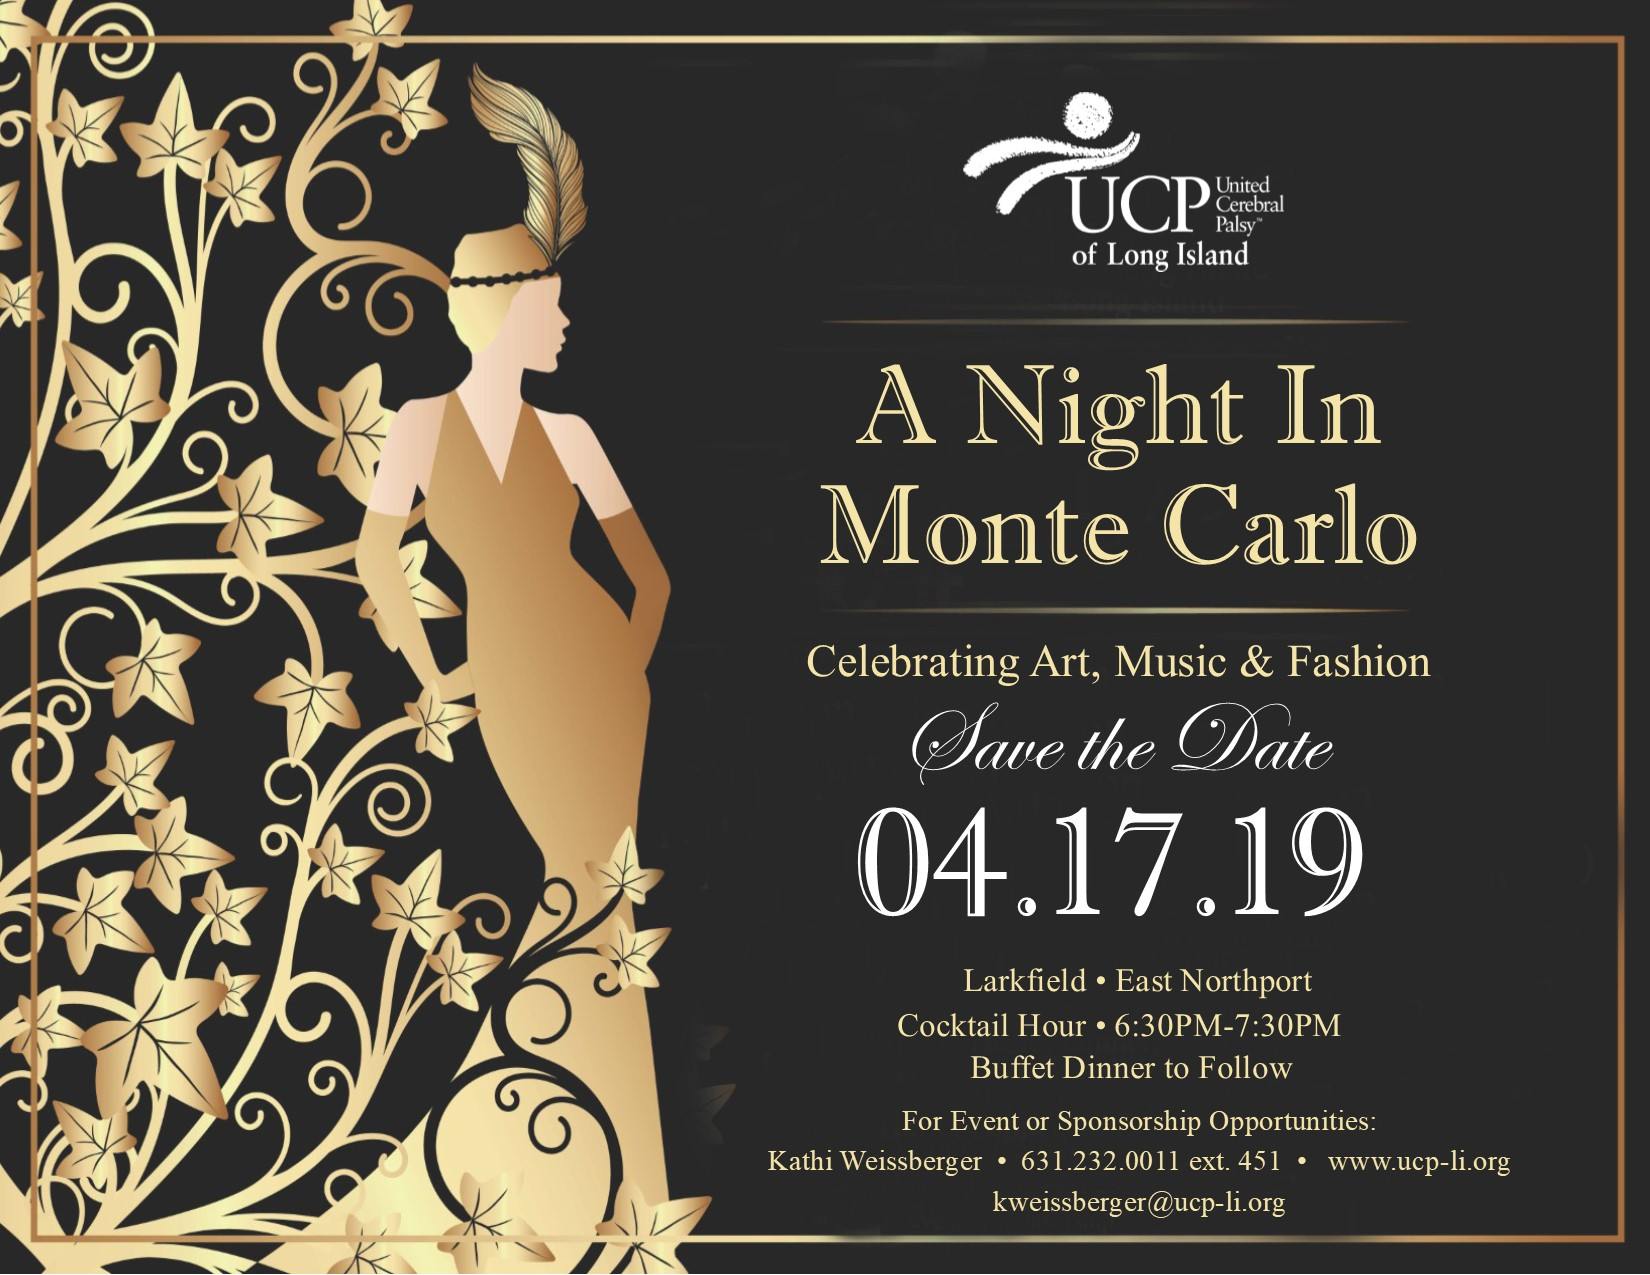 A Night in Monte Carlo